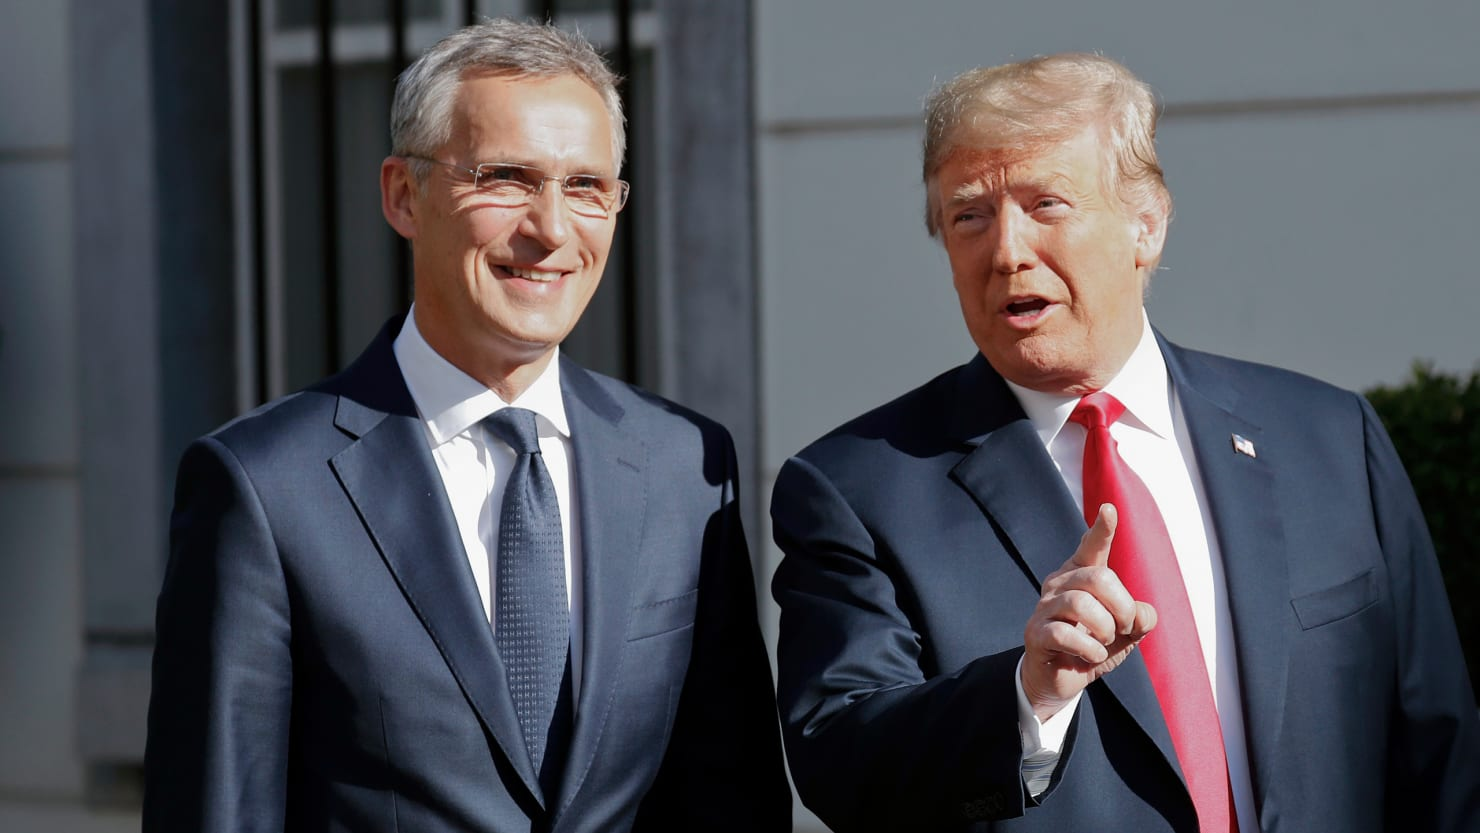 'Anger and Disgust' as Trump Blows Up NATO Summit